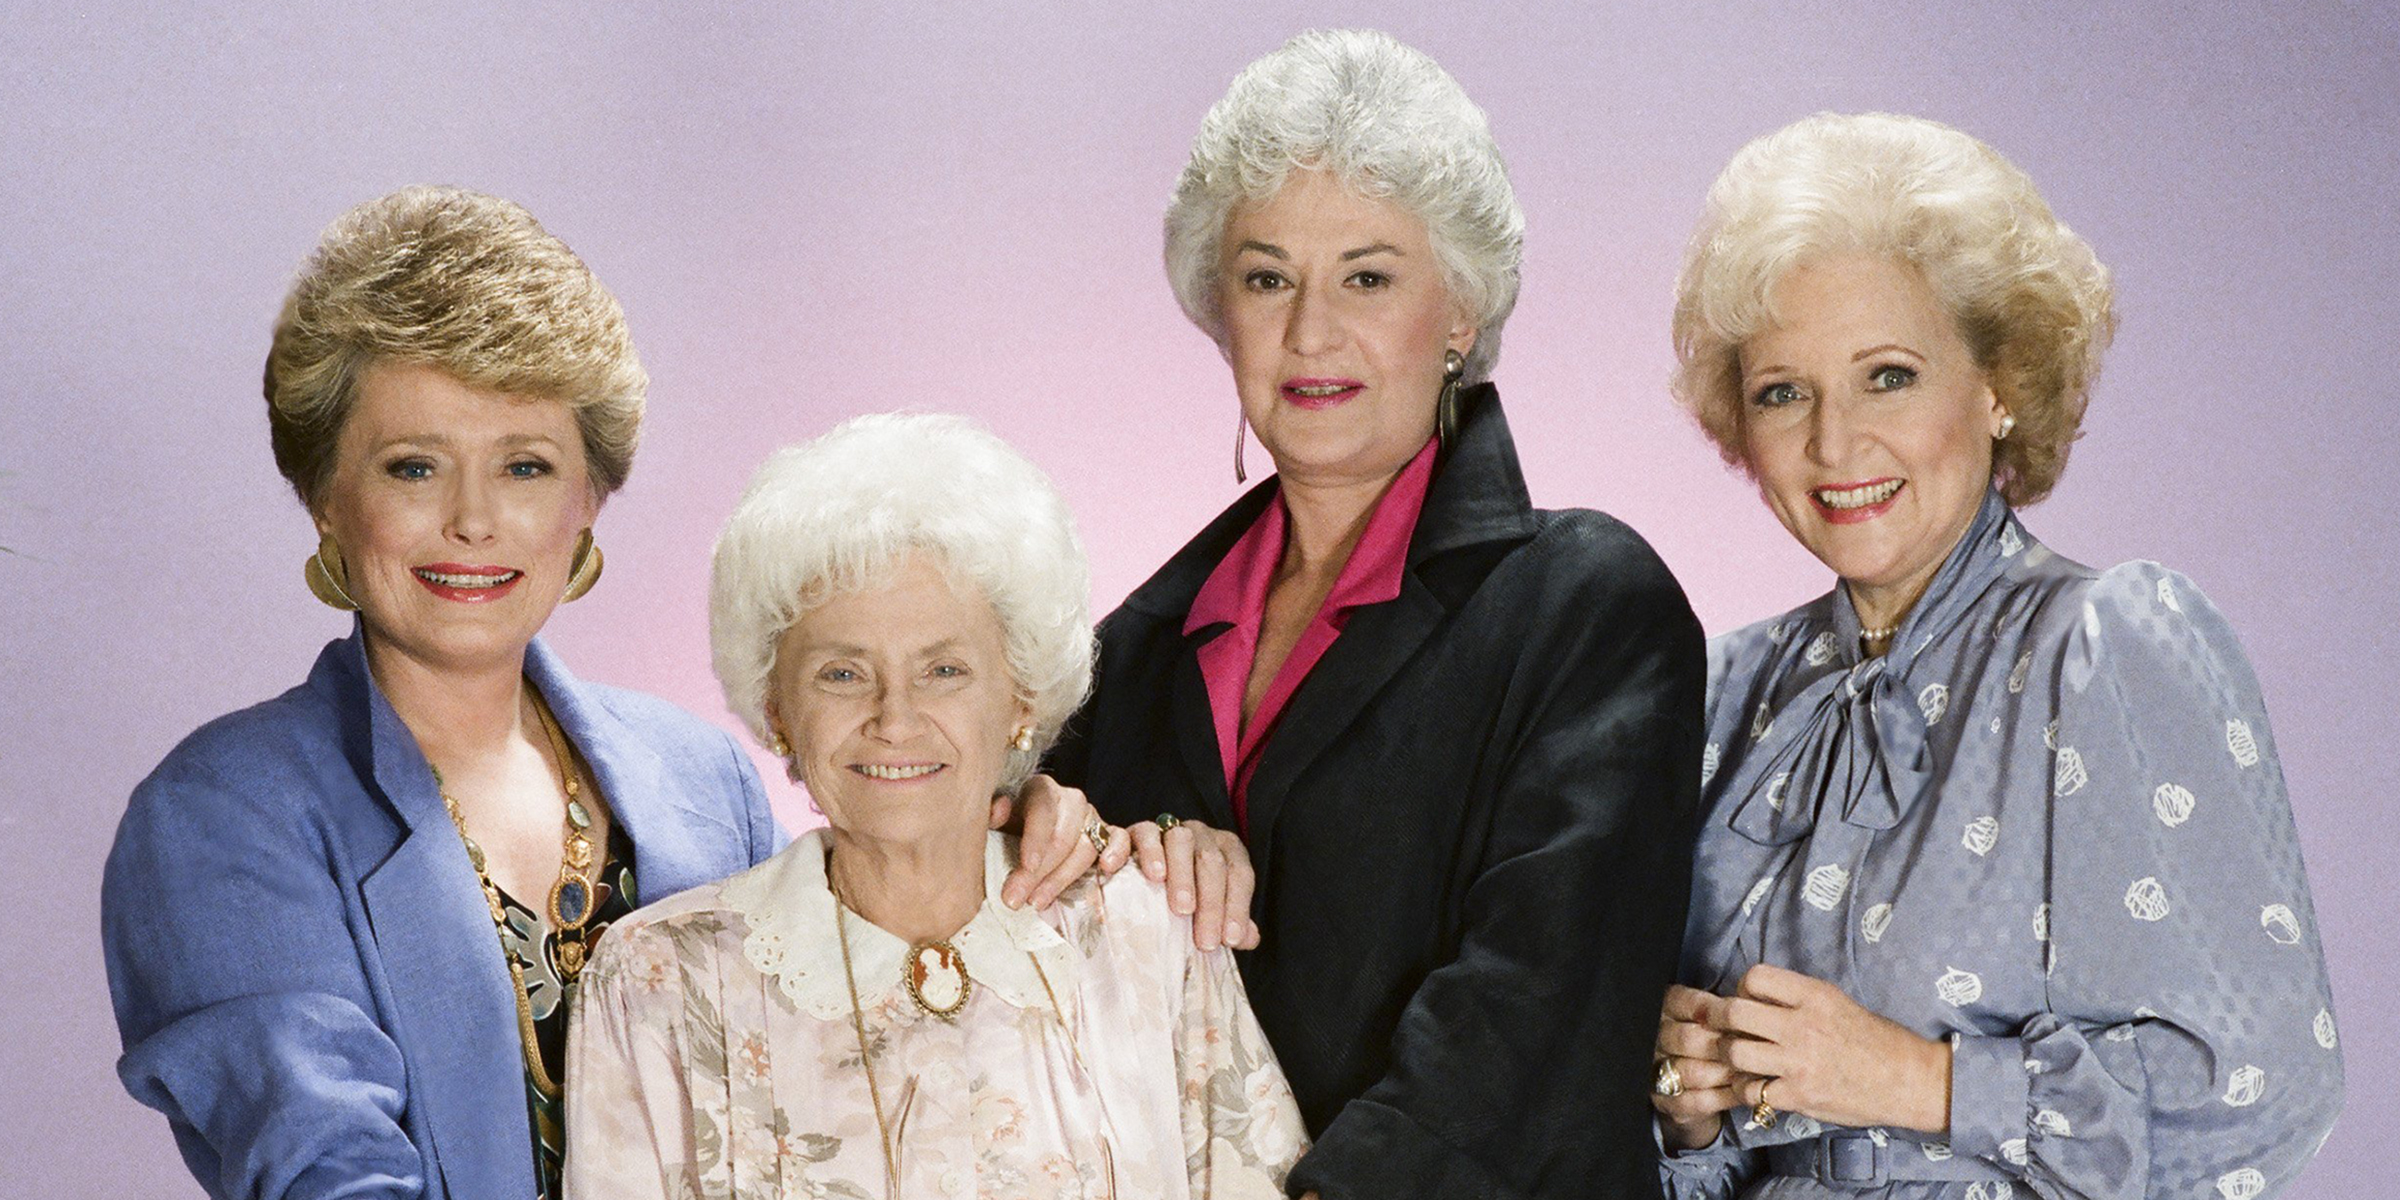 four older white women standing in front a purple background on The Golden Girls